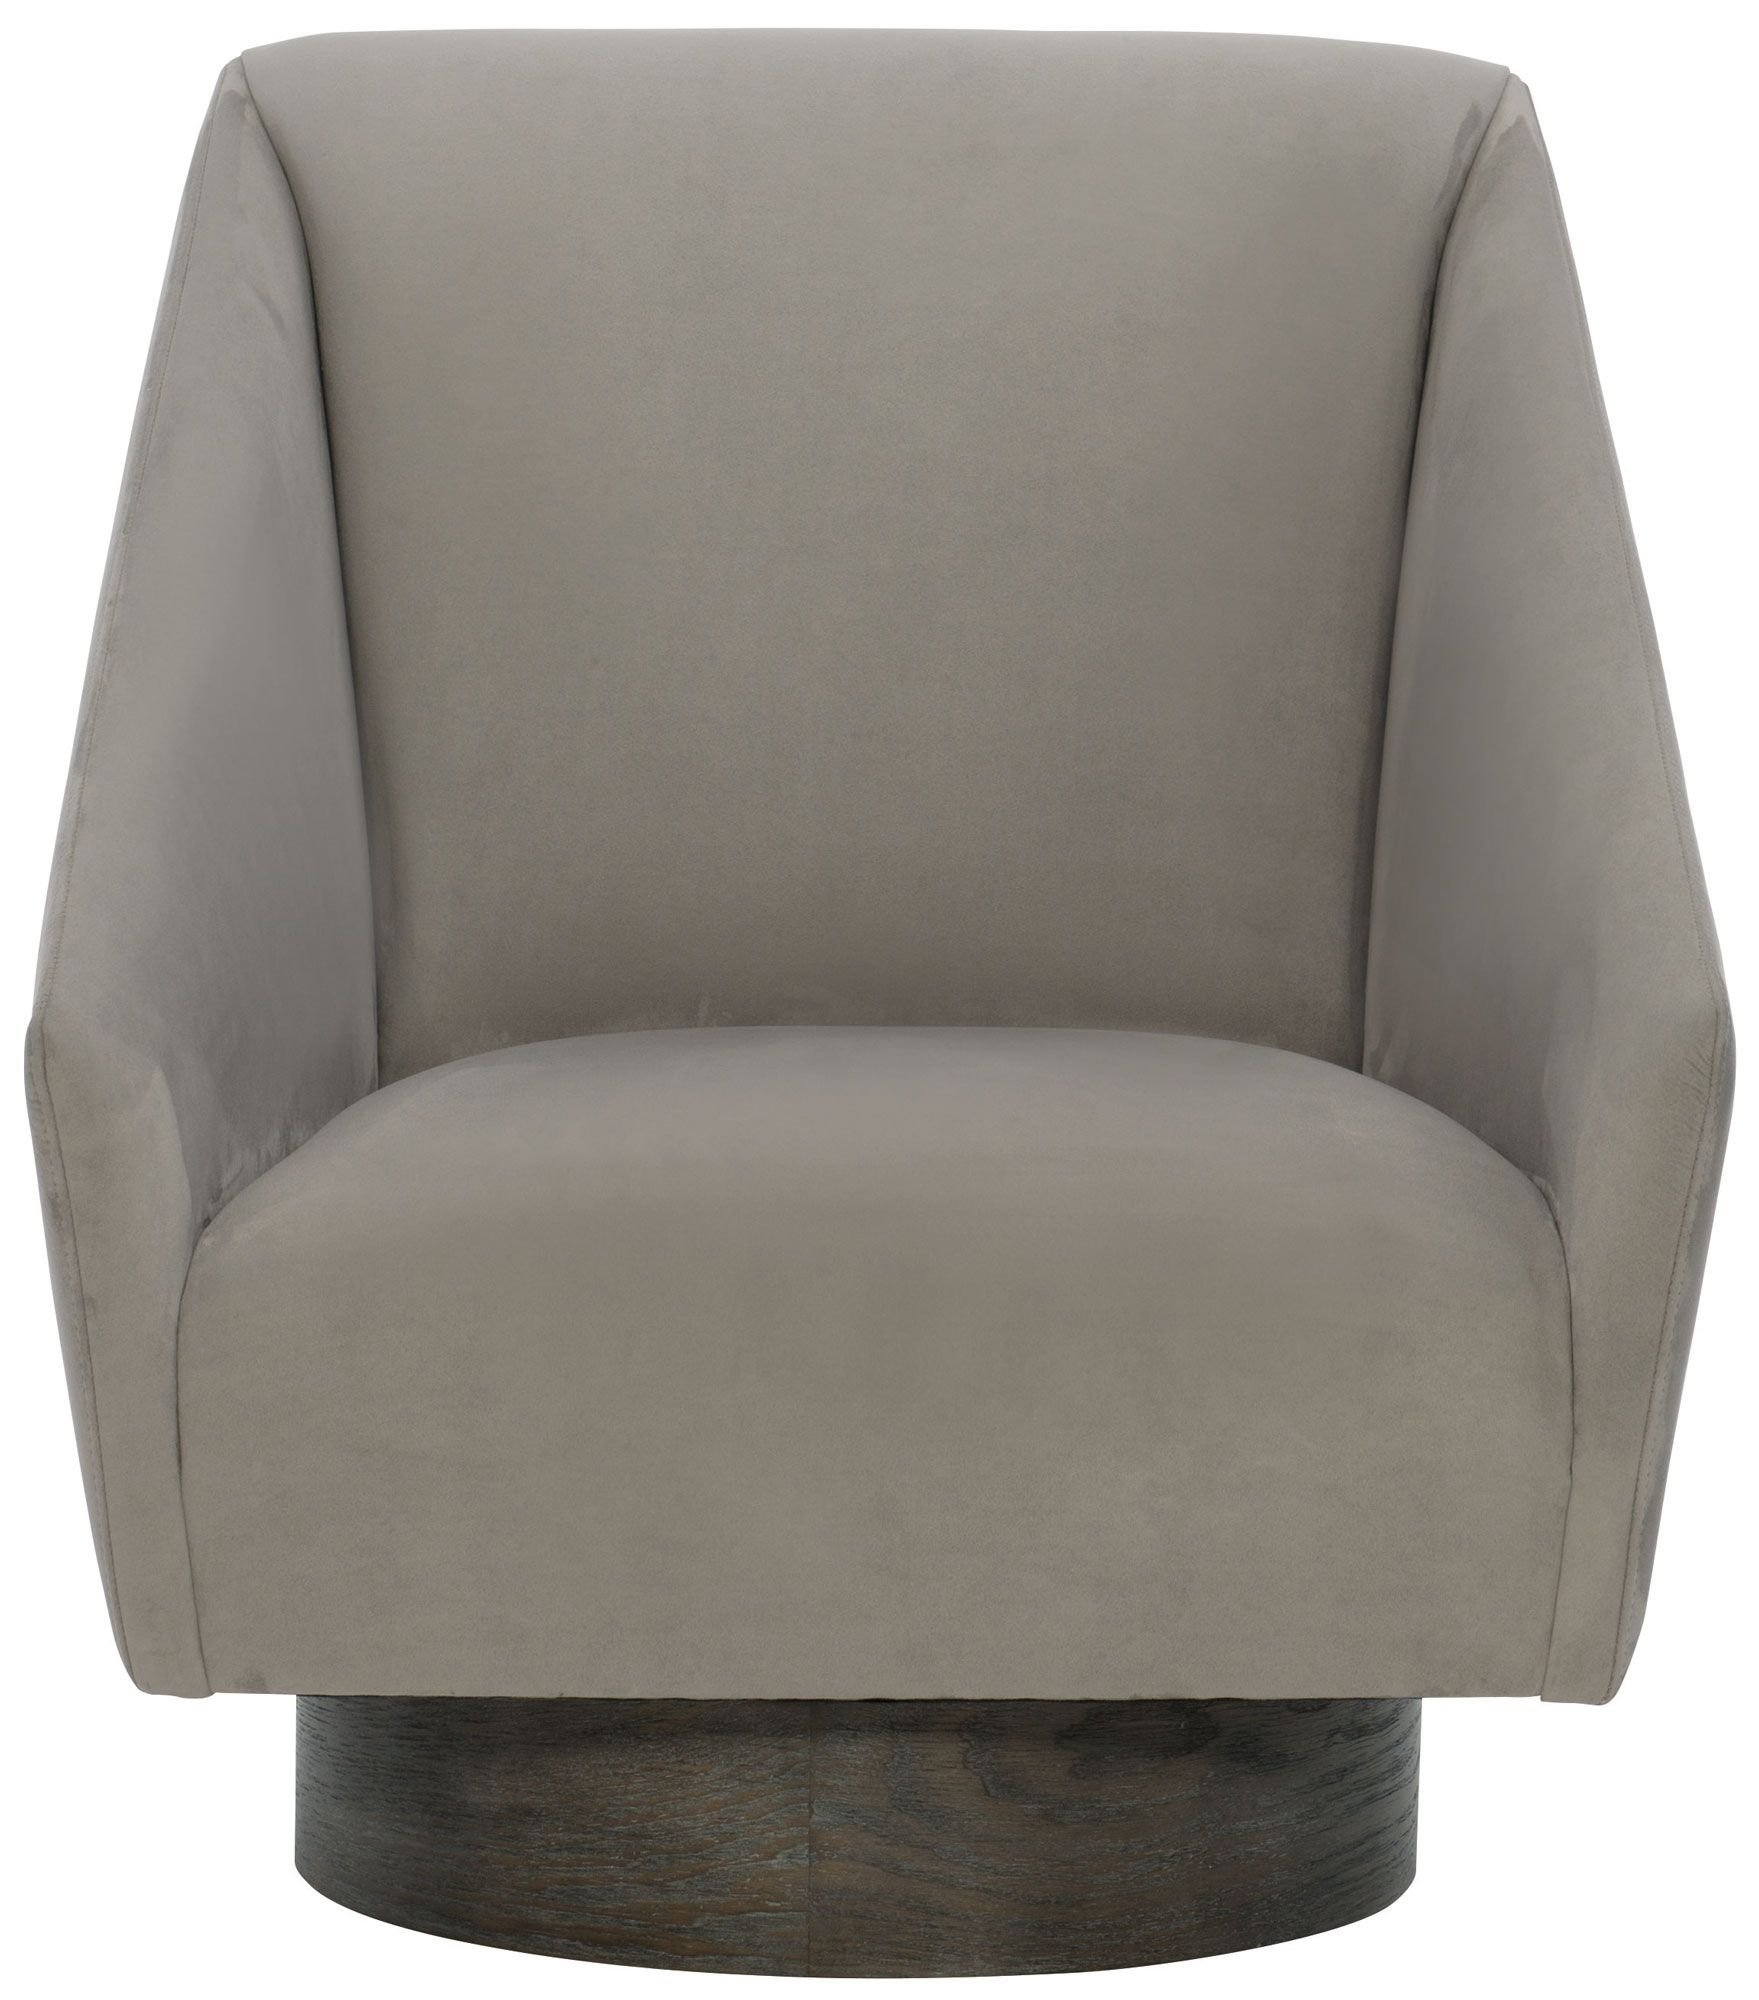 Cornet Accent Chair Swivel And Glide: Leather Swivel Chair, Swivel